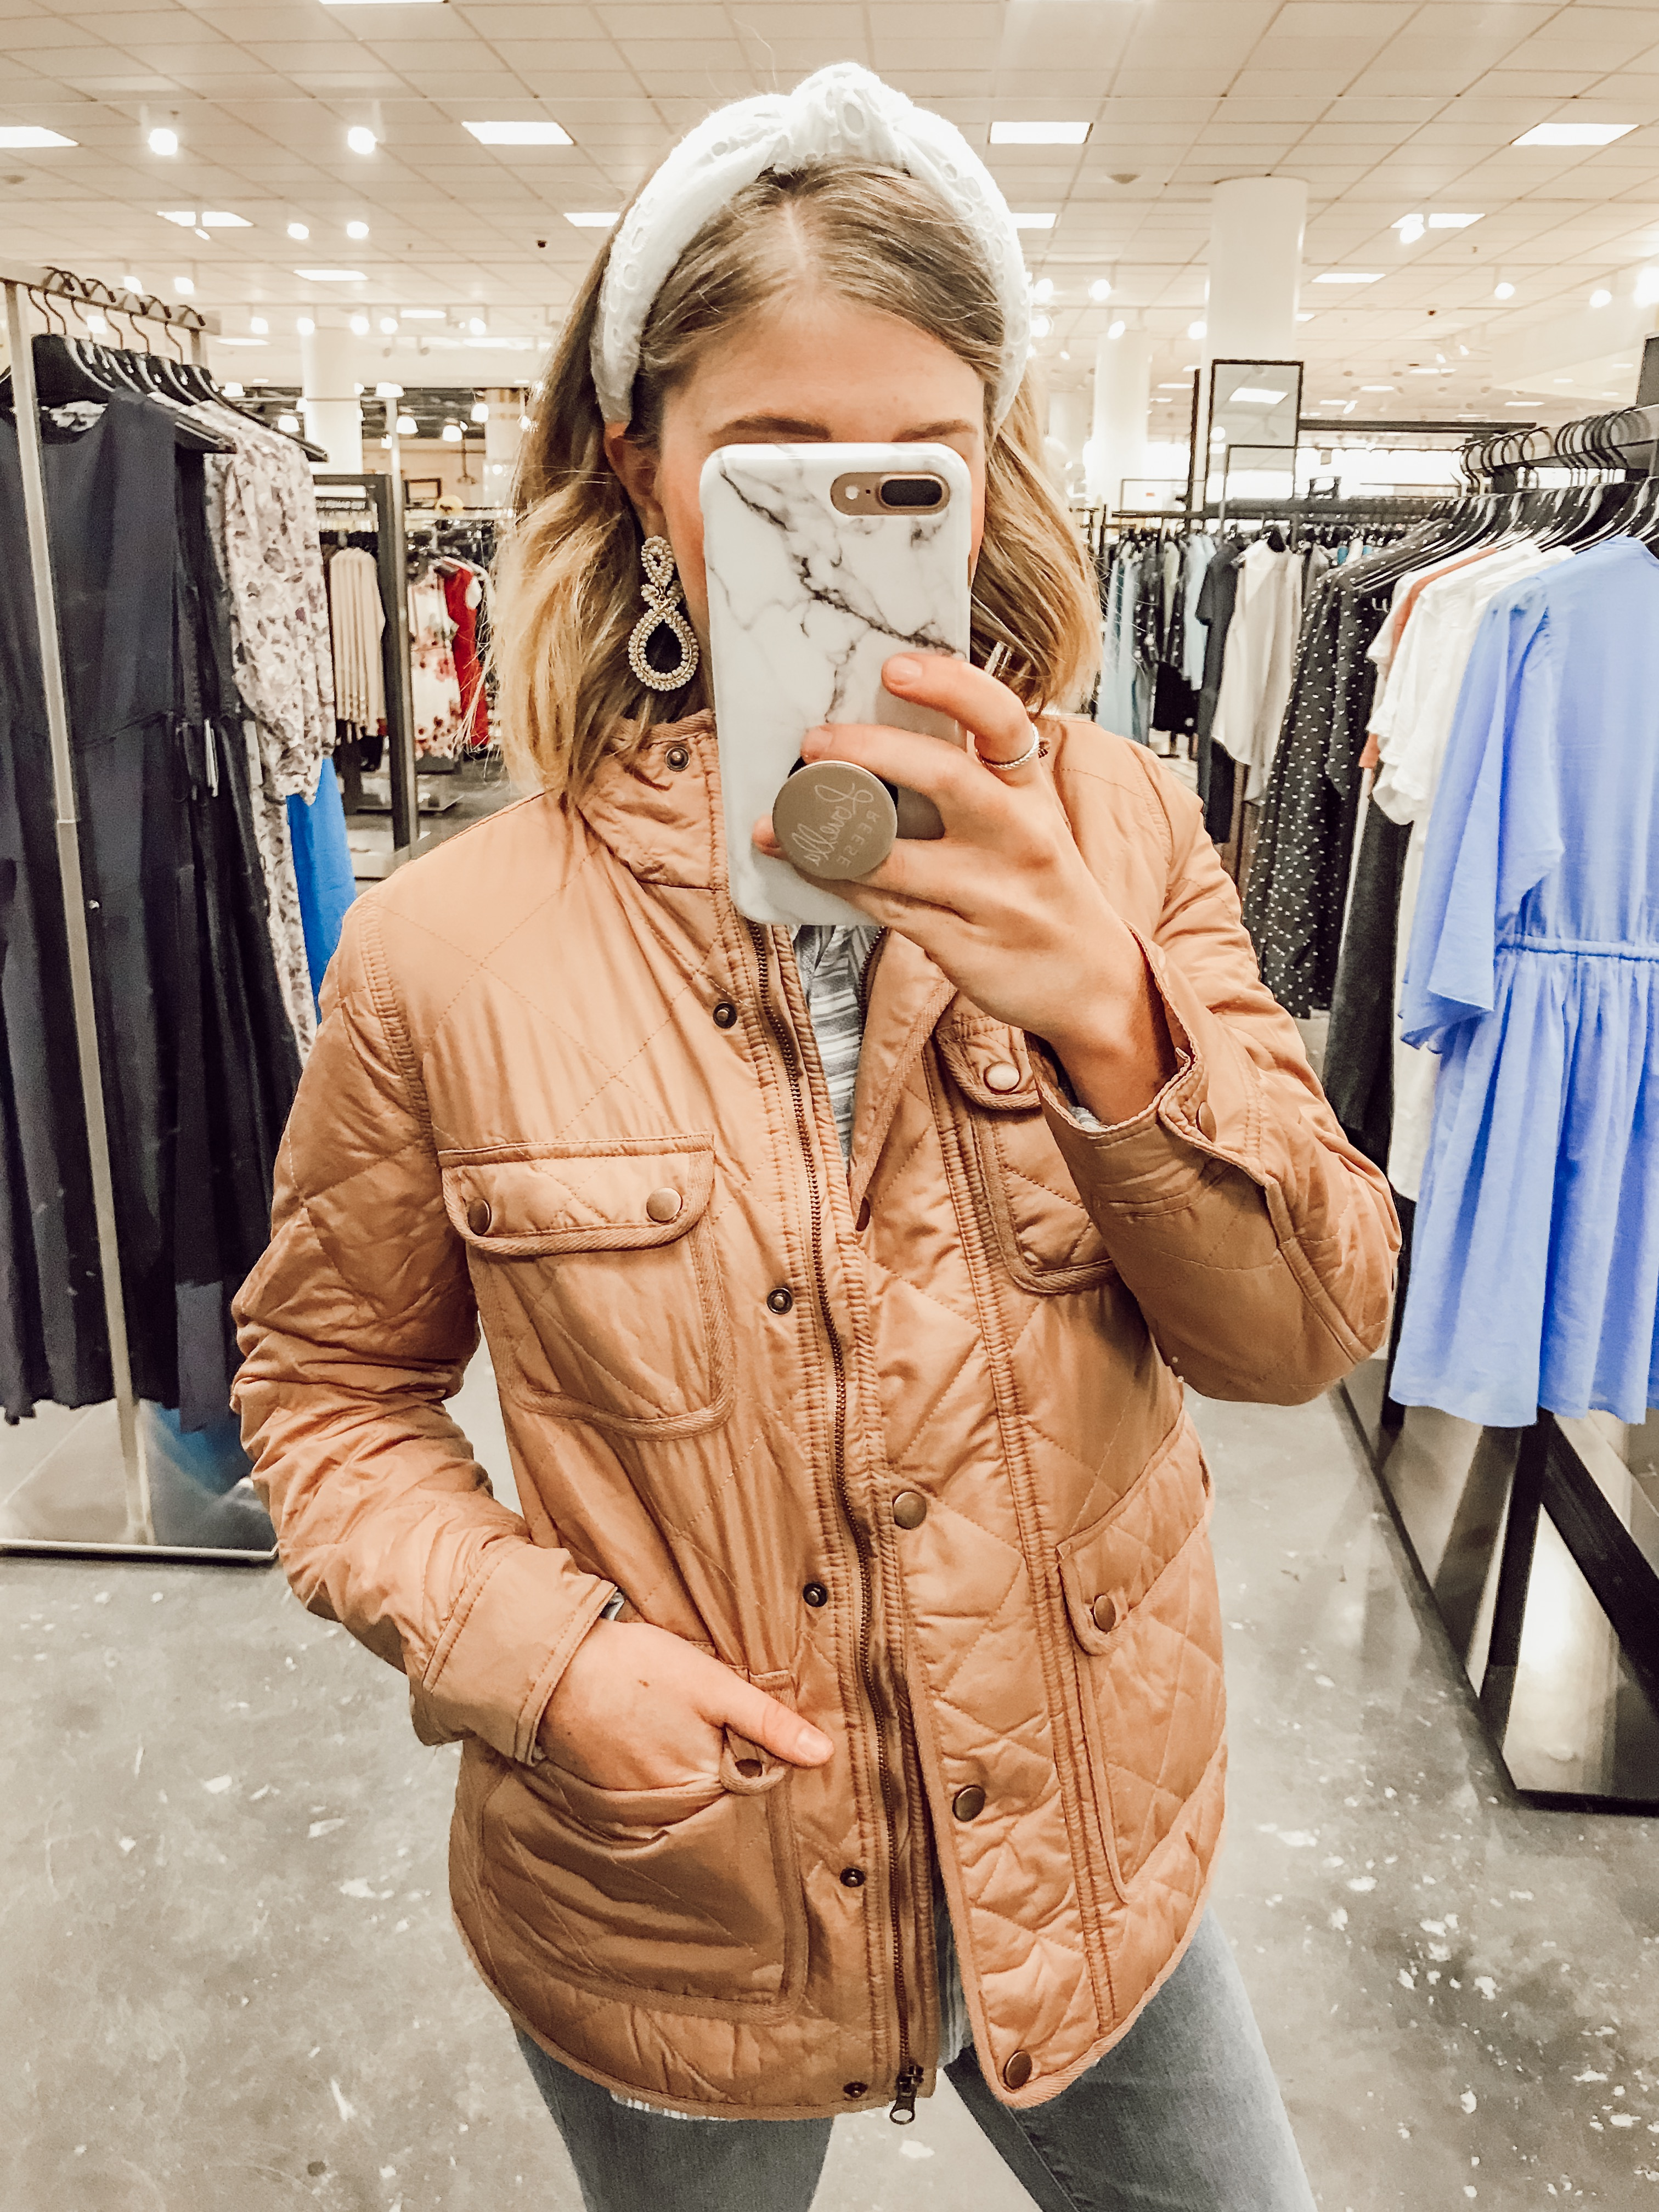 Thread & Supply Fleece Lined Quilted Utility Jacket | | 2019 Nordstrom Anniversary Fitting Room Session featured on Louella Reese Life & Style Blog